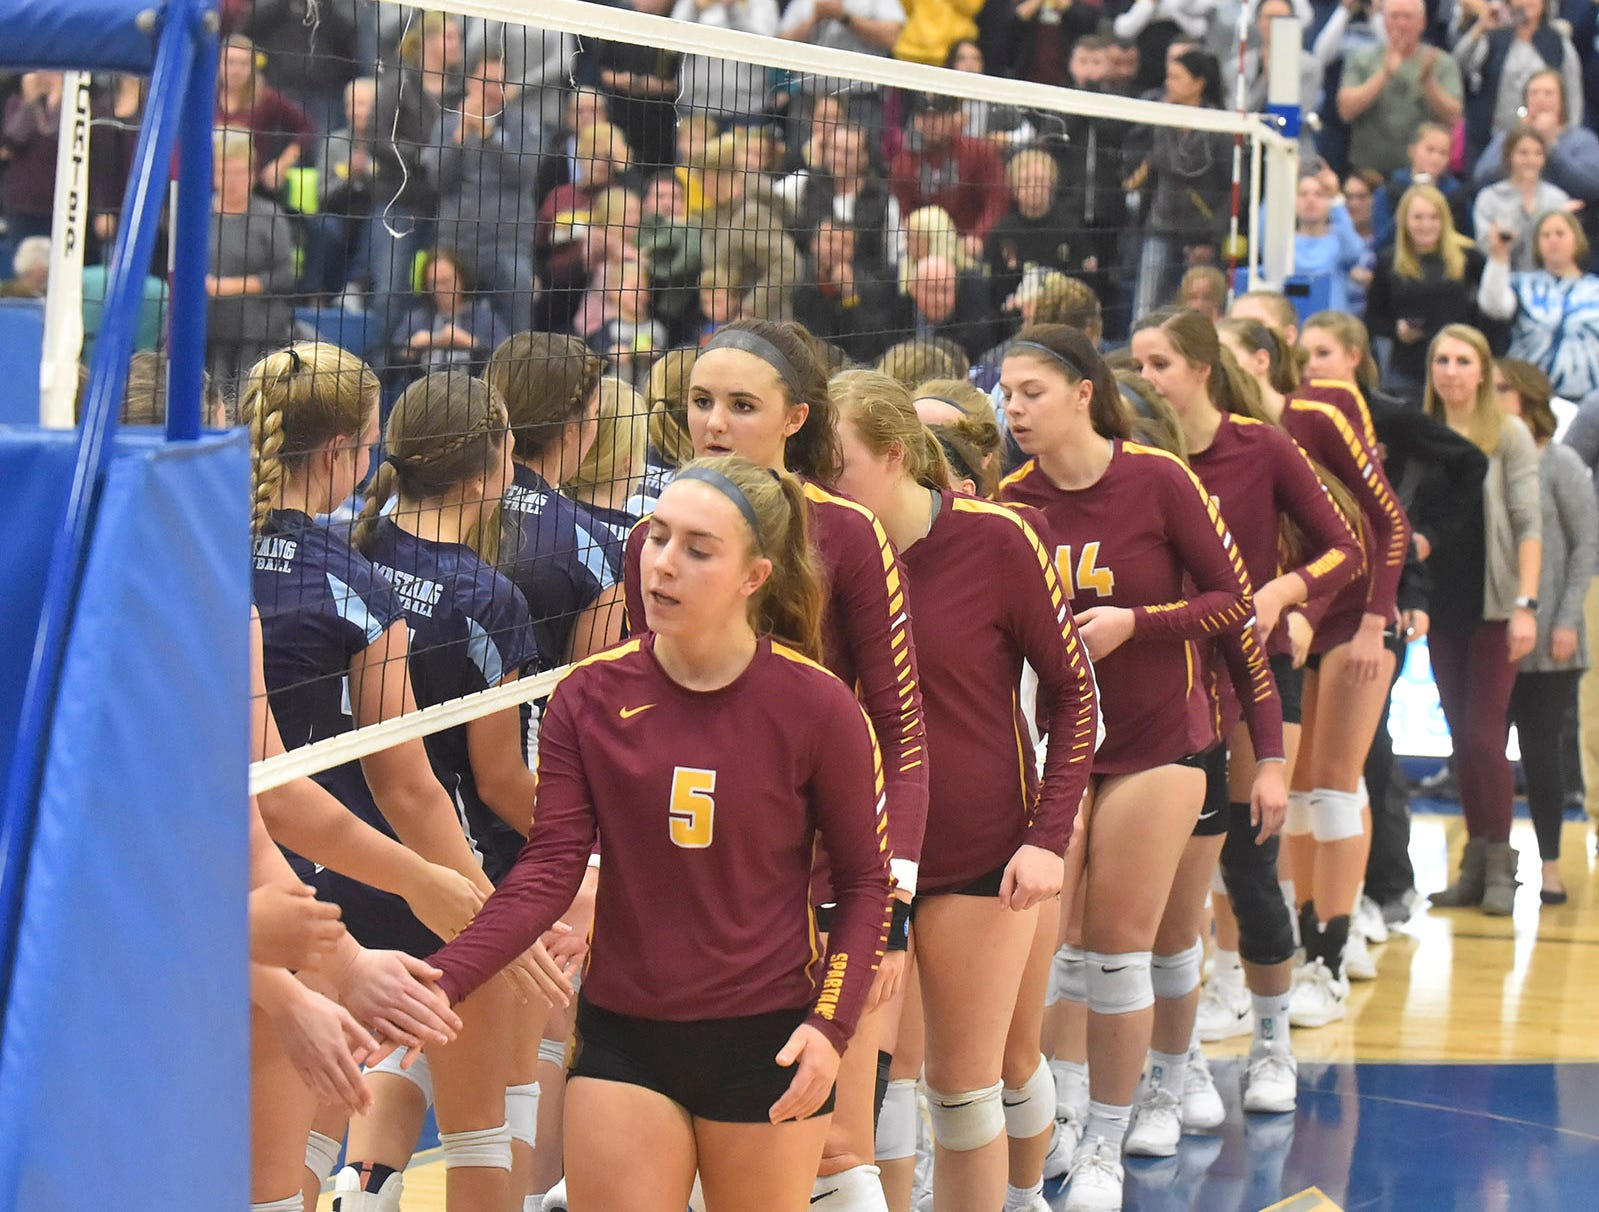 Game ends with Little Chute advancing to state at the WIAA Division 2 sectional final against Luxemburg-Casco on Oct. 27, 2018, in Wrightstown. Tina M. Gohr/USA TODAY NETWORK-Wisconsin